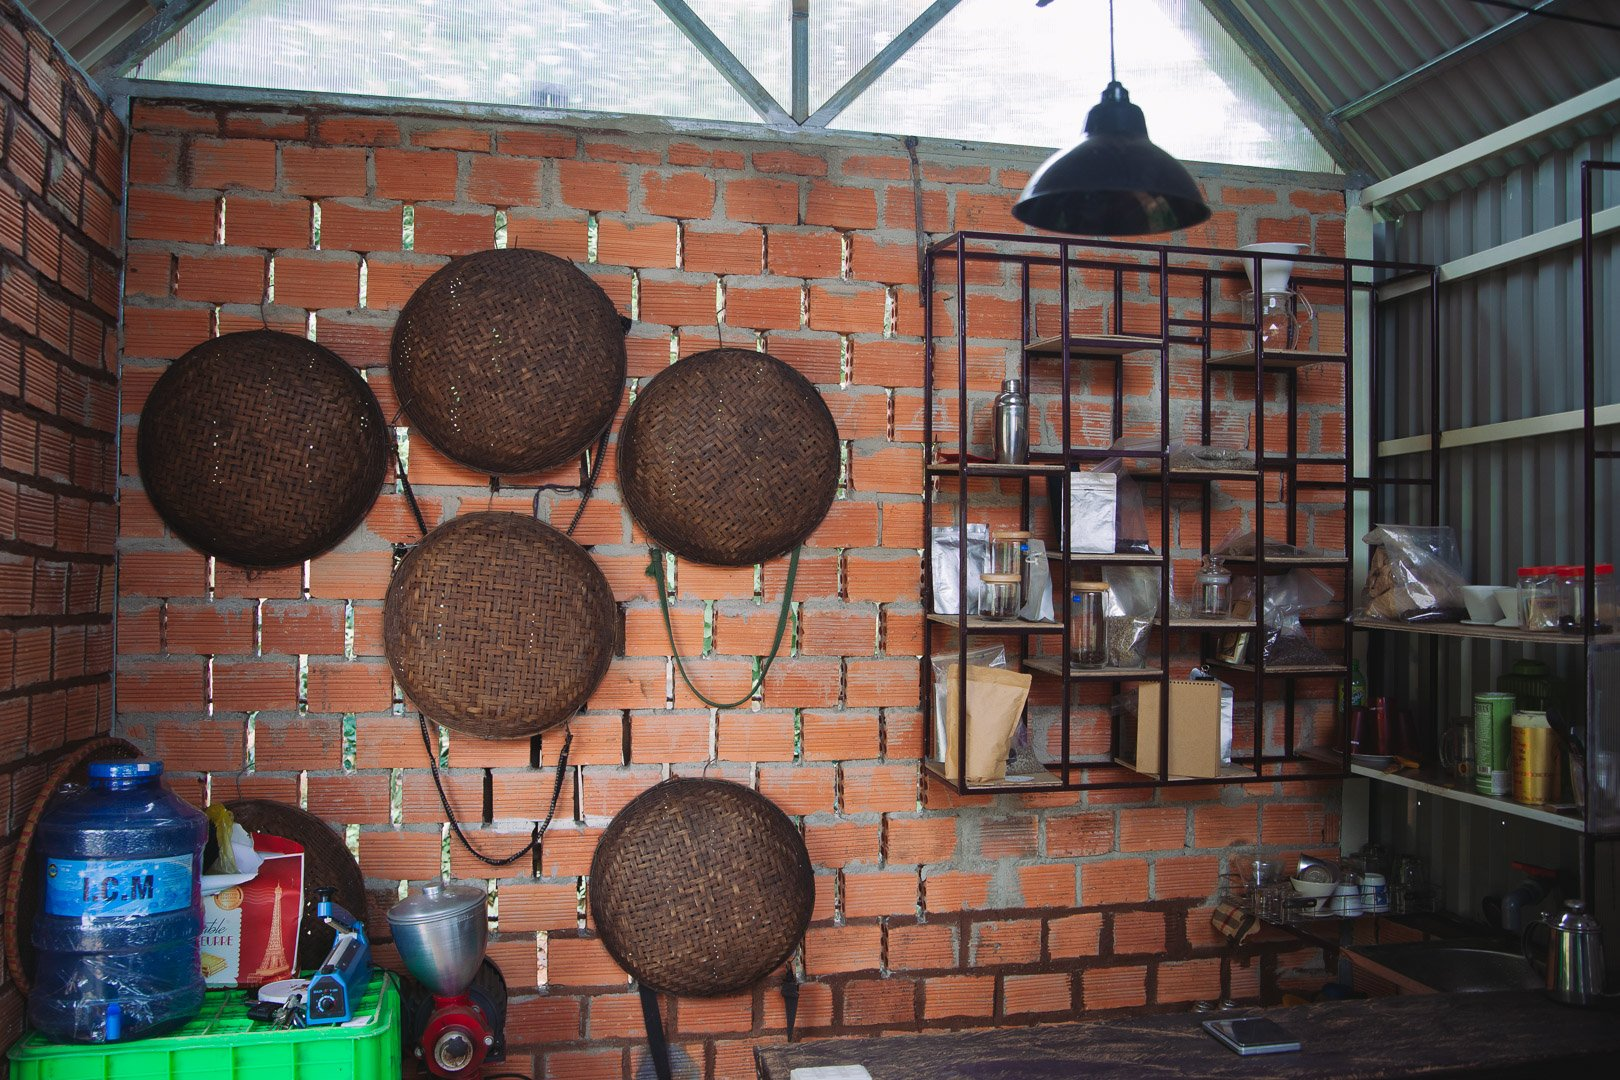 Inside the coffee workshop, coffee picking baskets hang on the wall